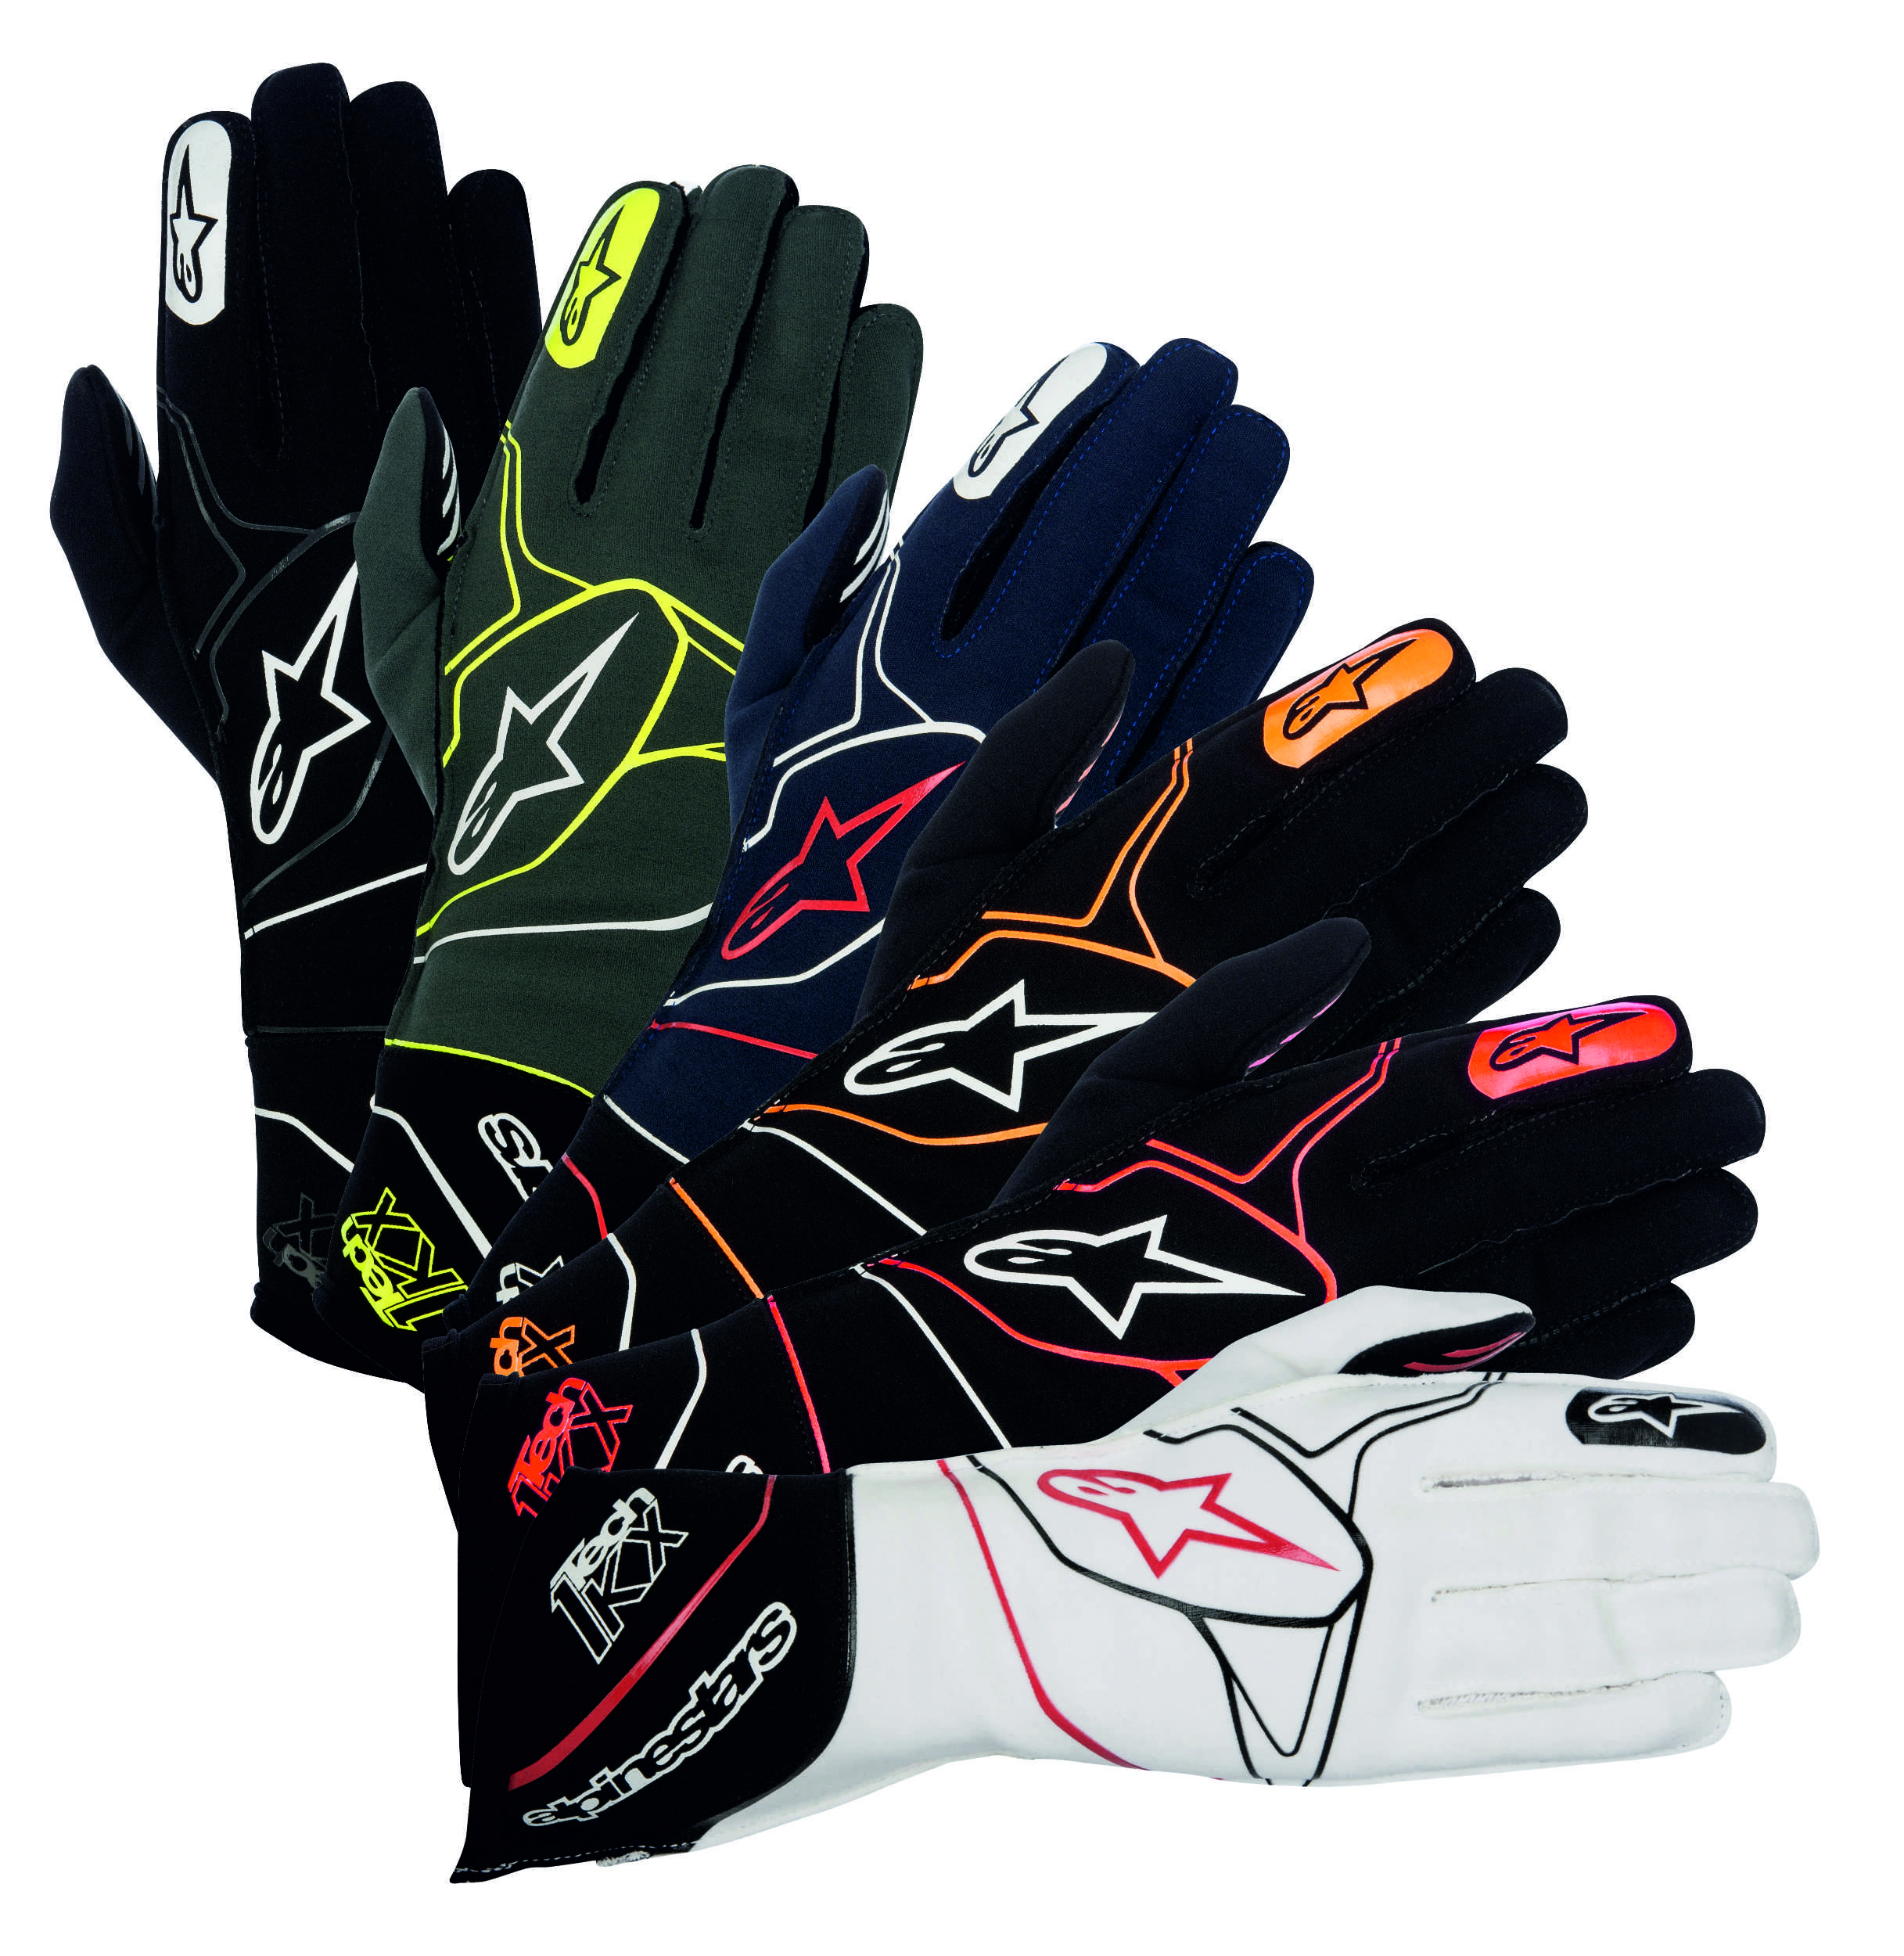 Alpinestars Rukavice Tech 1-KX